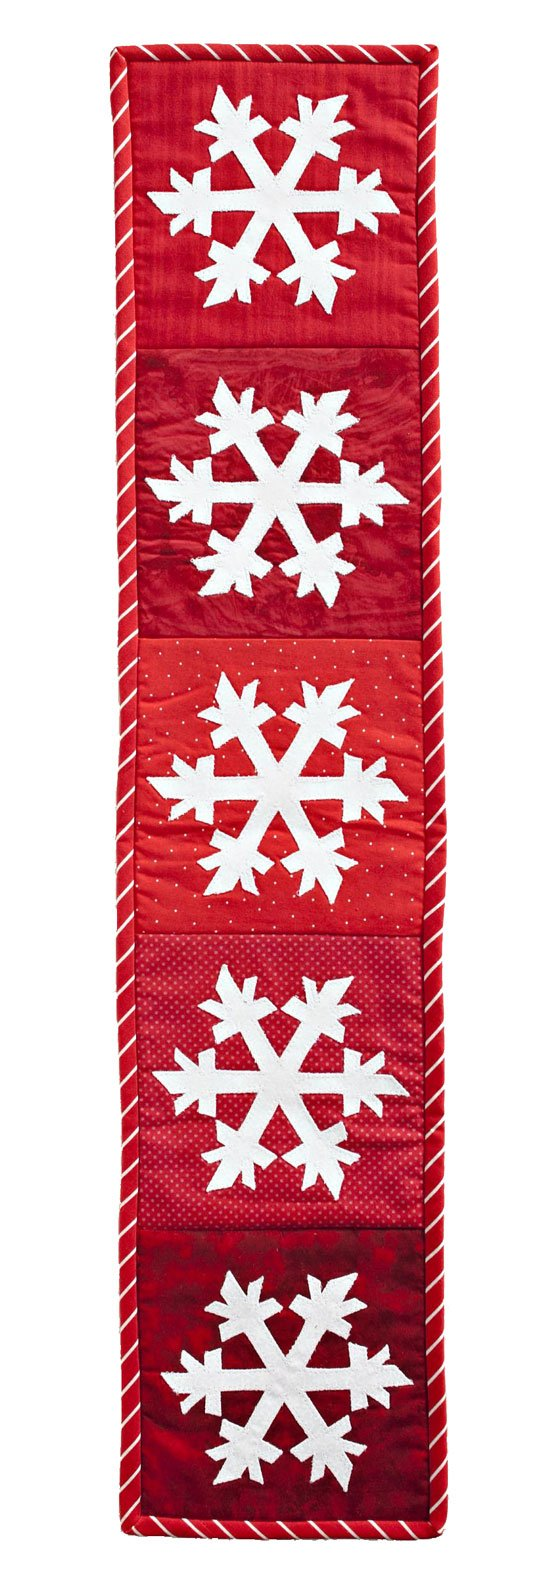 Snowflakes Wall Hanging Allpeoplequilt Com